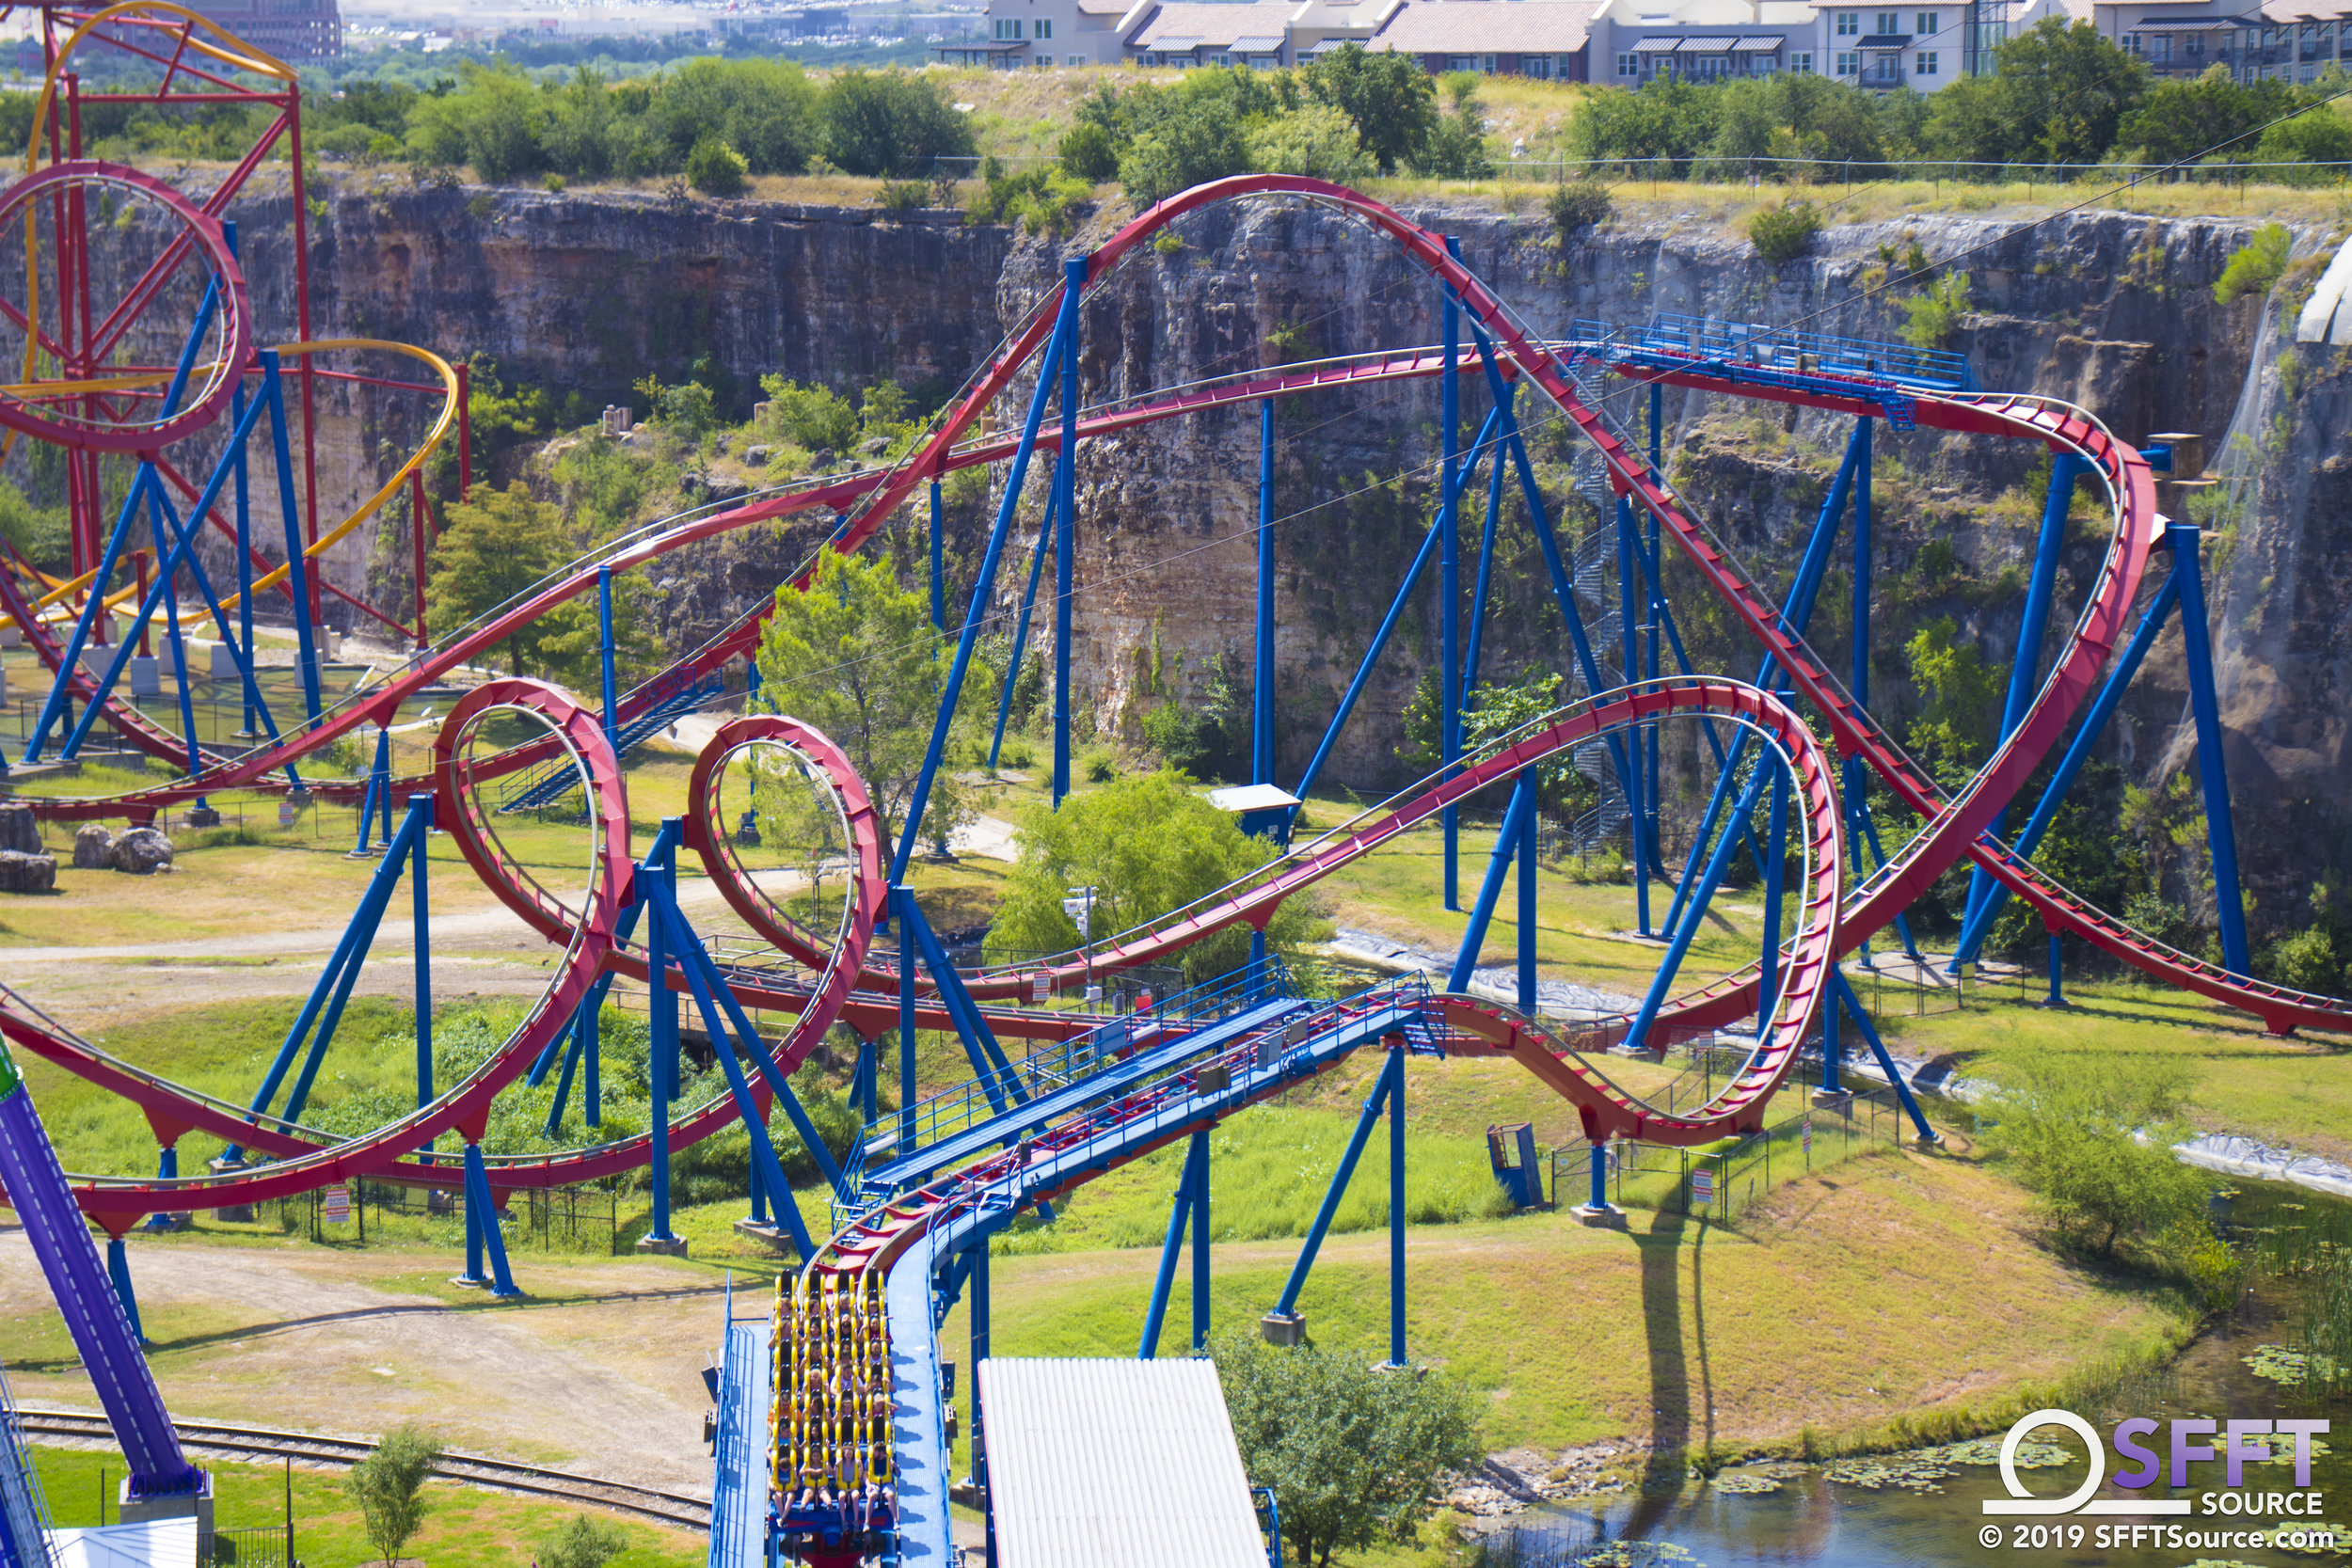 A view of Superman Krypton Coaster from the park's quarry wall.